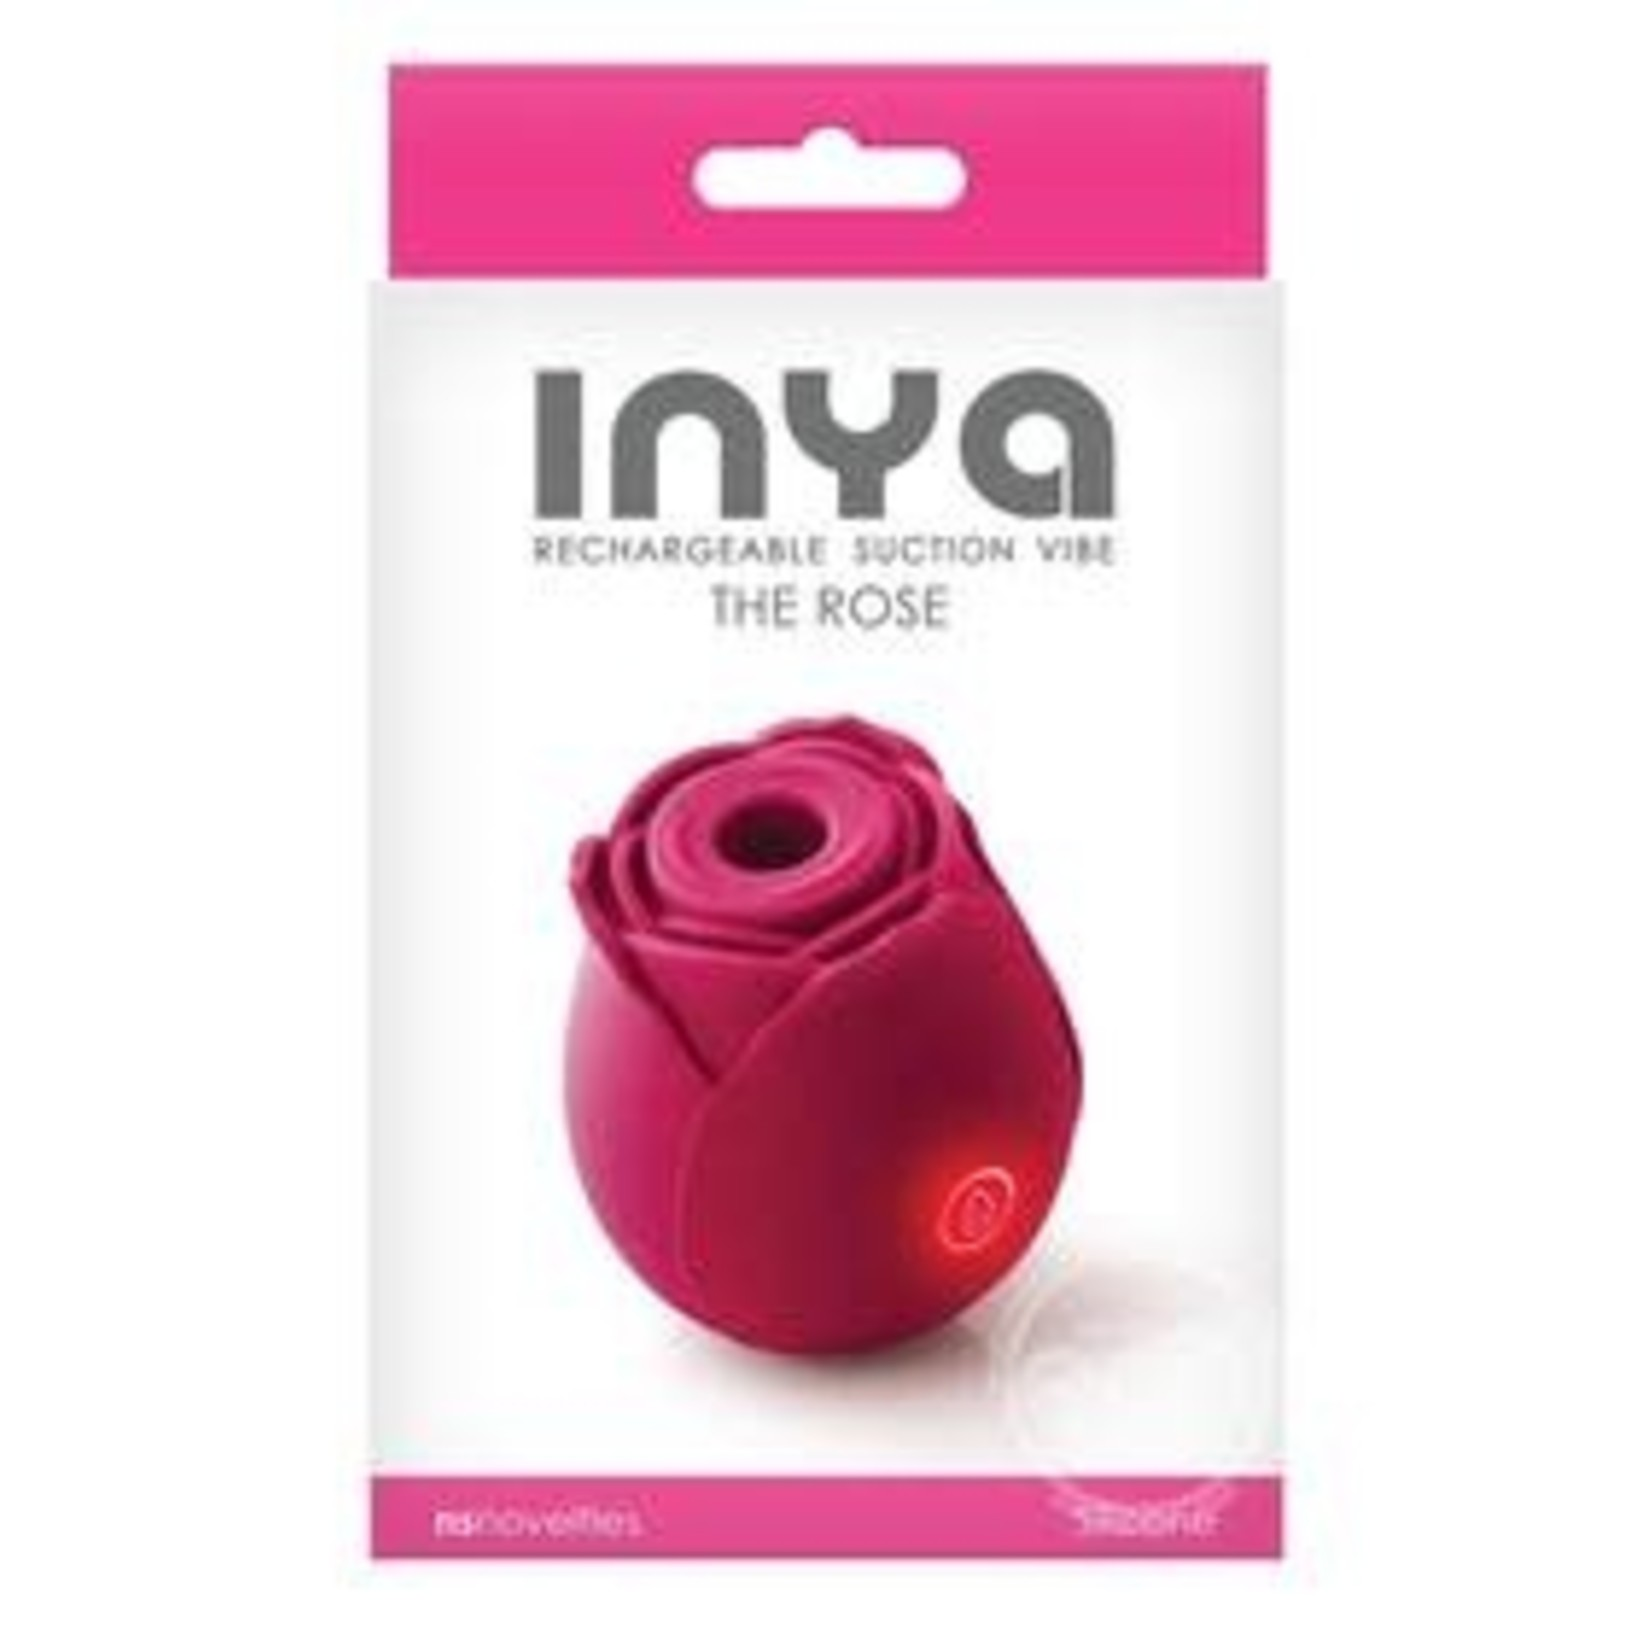 Inya The Rose Silicone Rechargeable Clitoral Stimulator - Pink